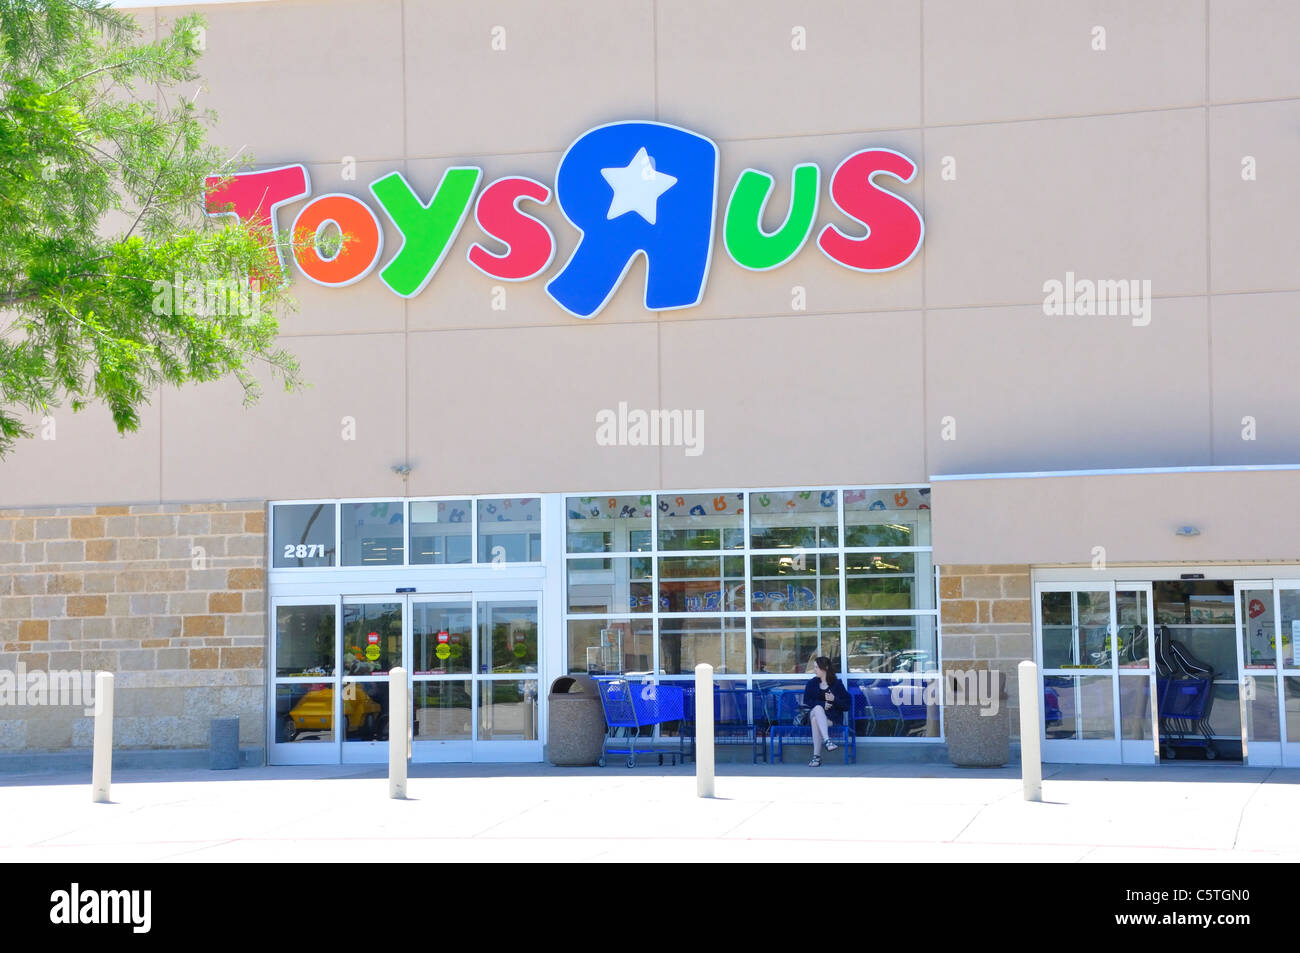 Shop Store Shopping Tx Us United States America American High Resolution Stock Photography And Images Alamy